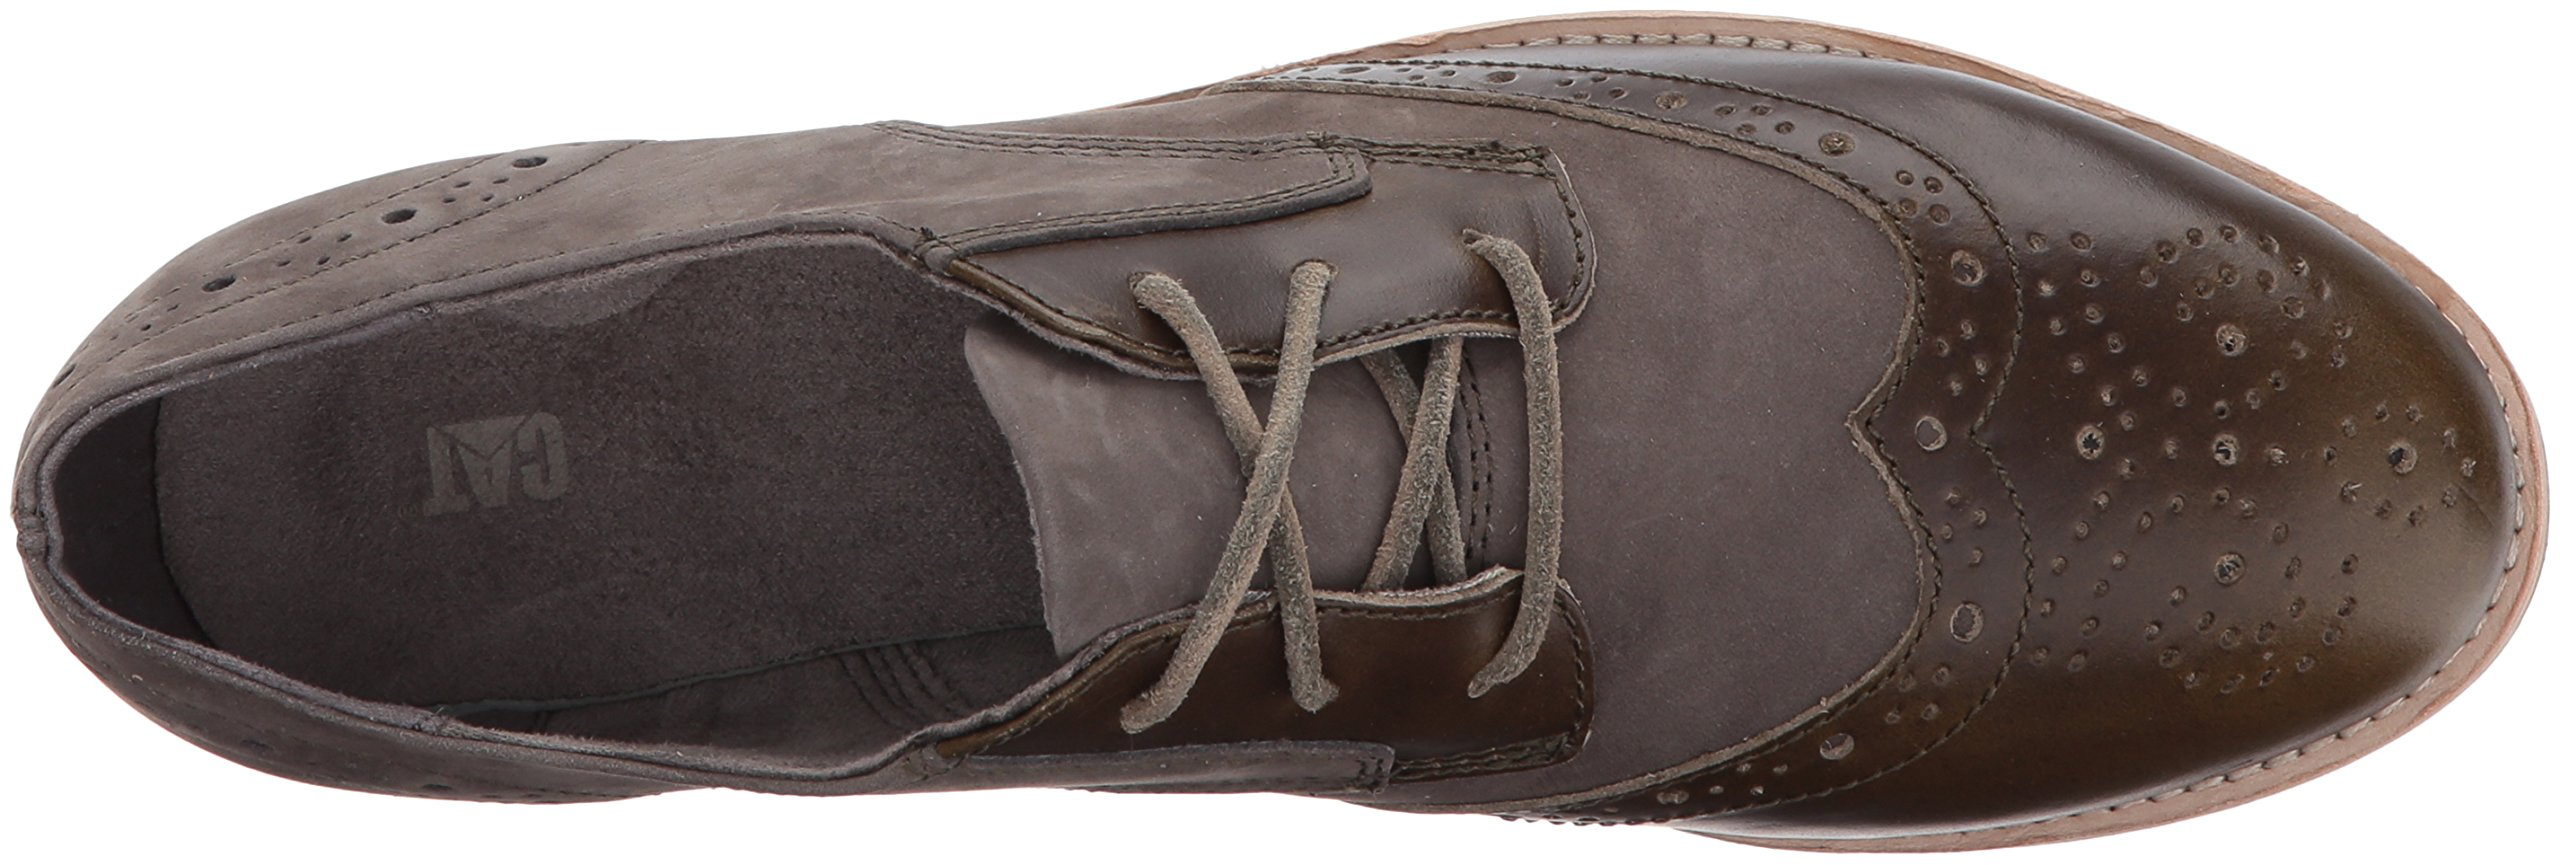 Caterpillar Women's Reegan II Lace up Leather Oxford, Olive, 5.5 Medium US by Caterpillar (Image #8)